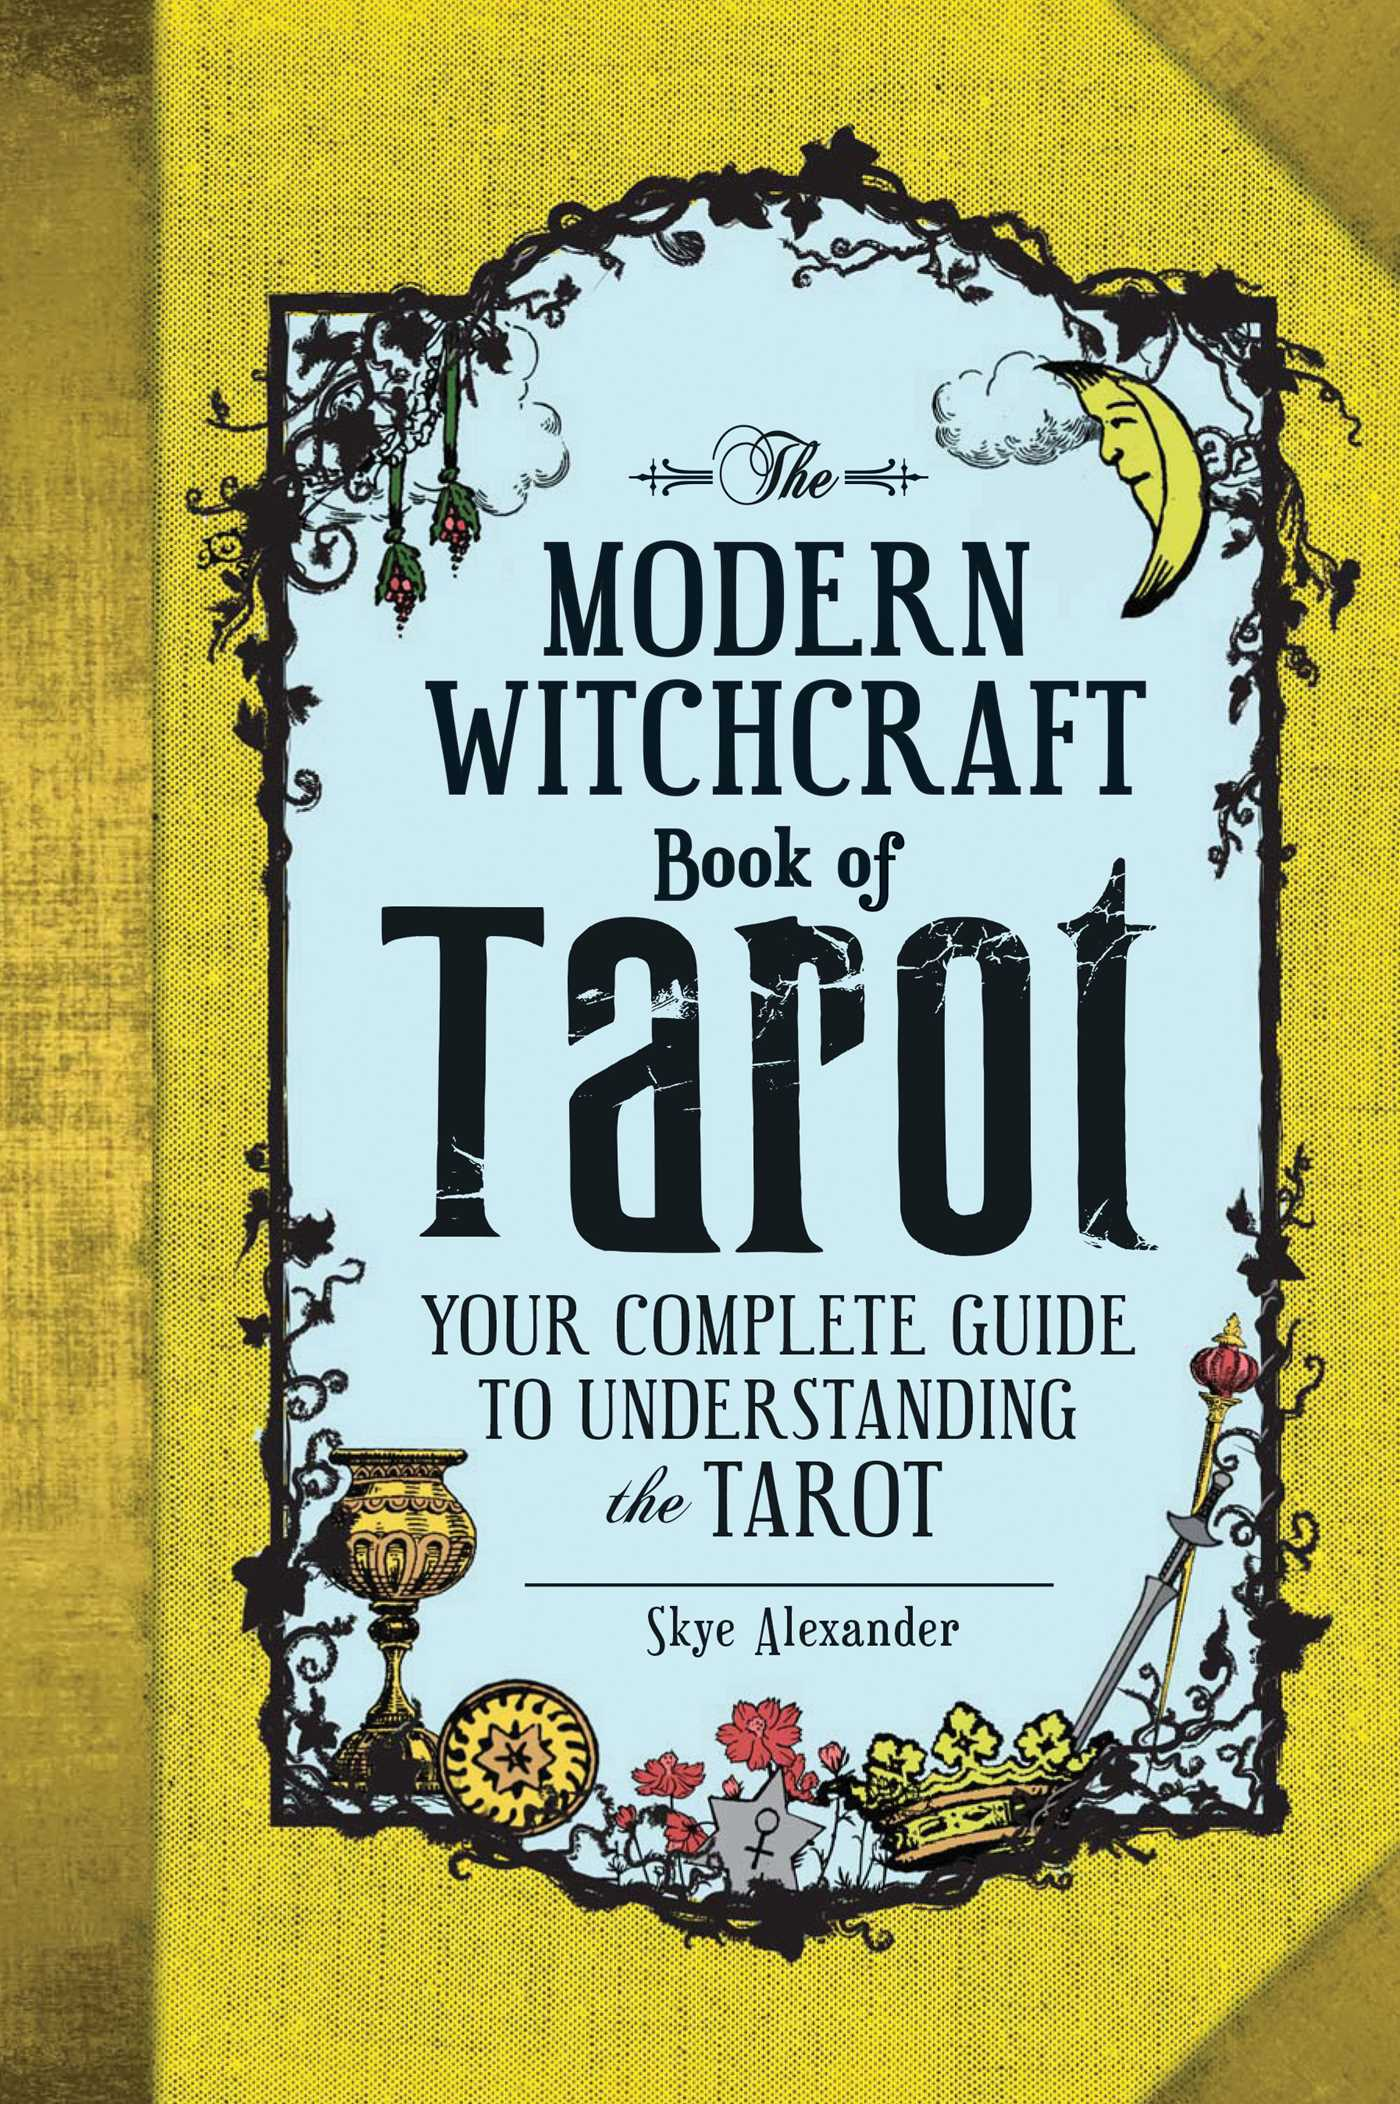 The Modern Witchcraft Book of Tarot : Your Complete Guide to Understanding the Tarot | Faith & Spirituality